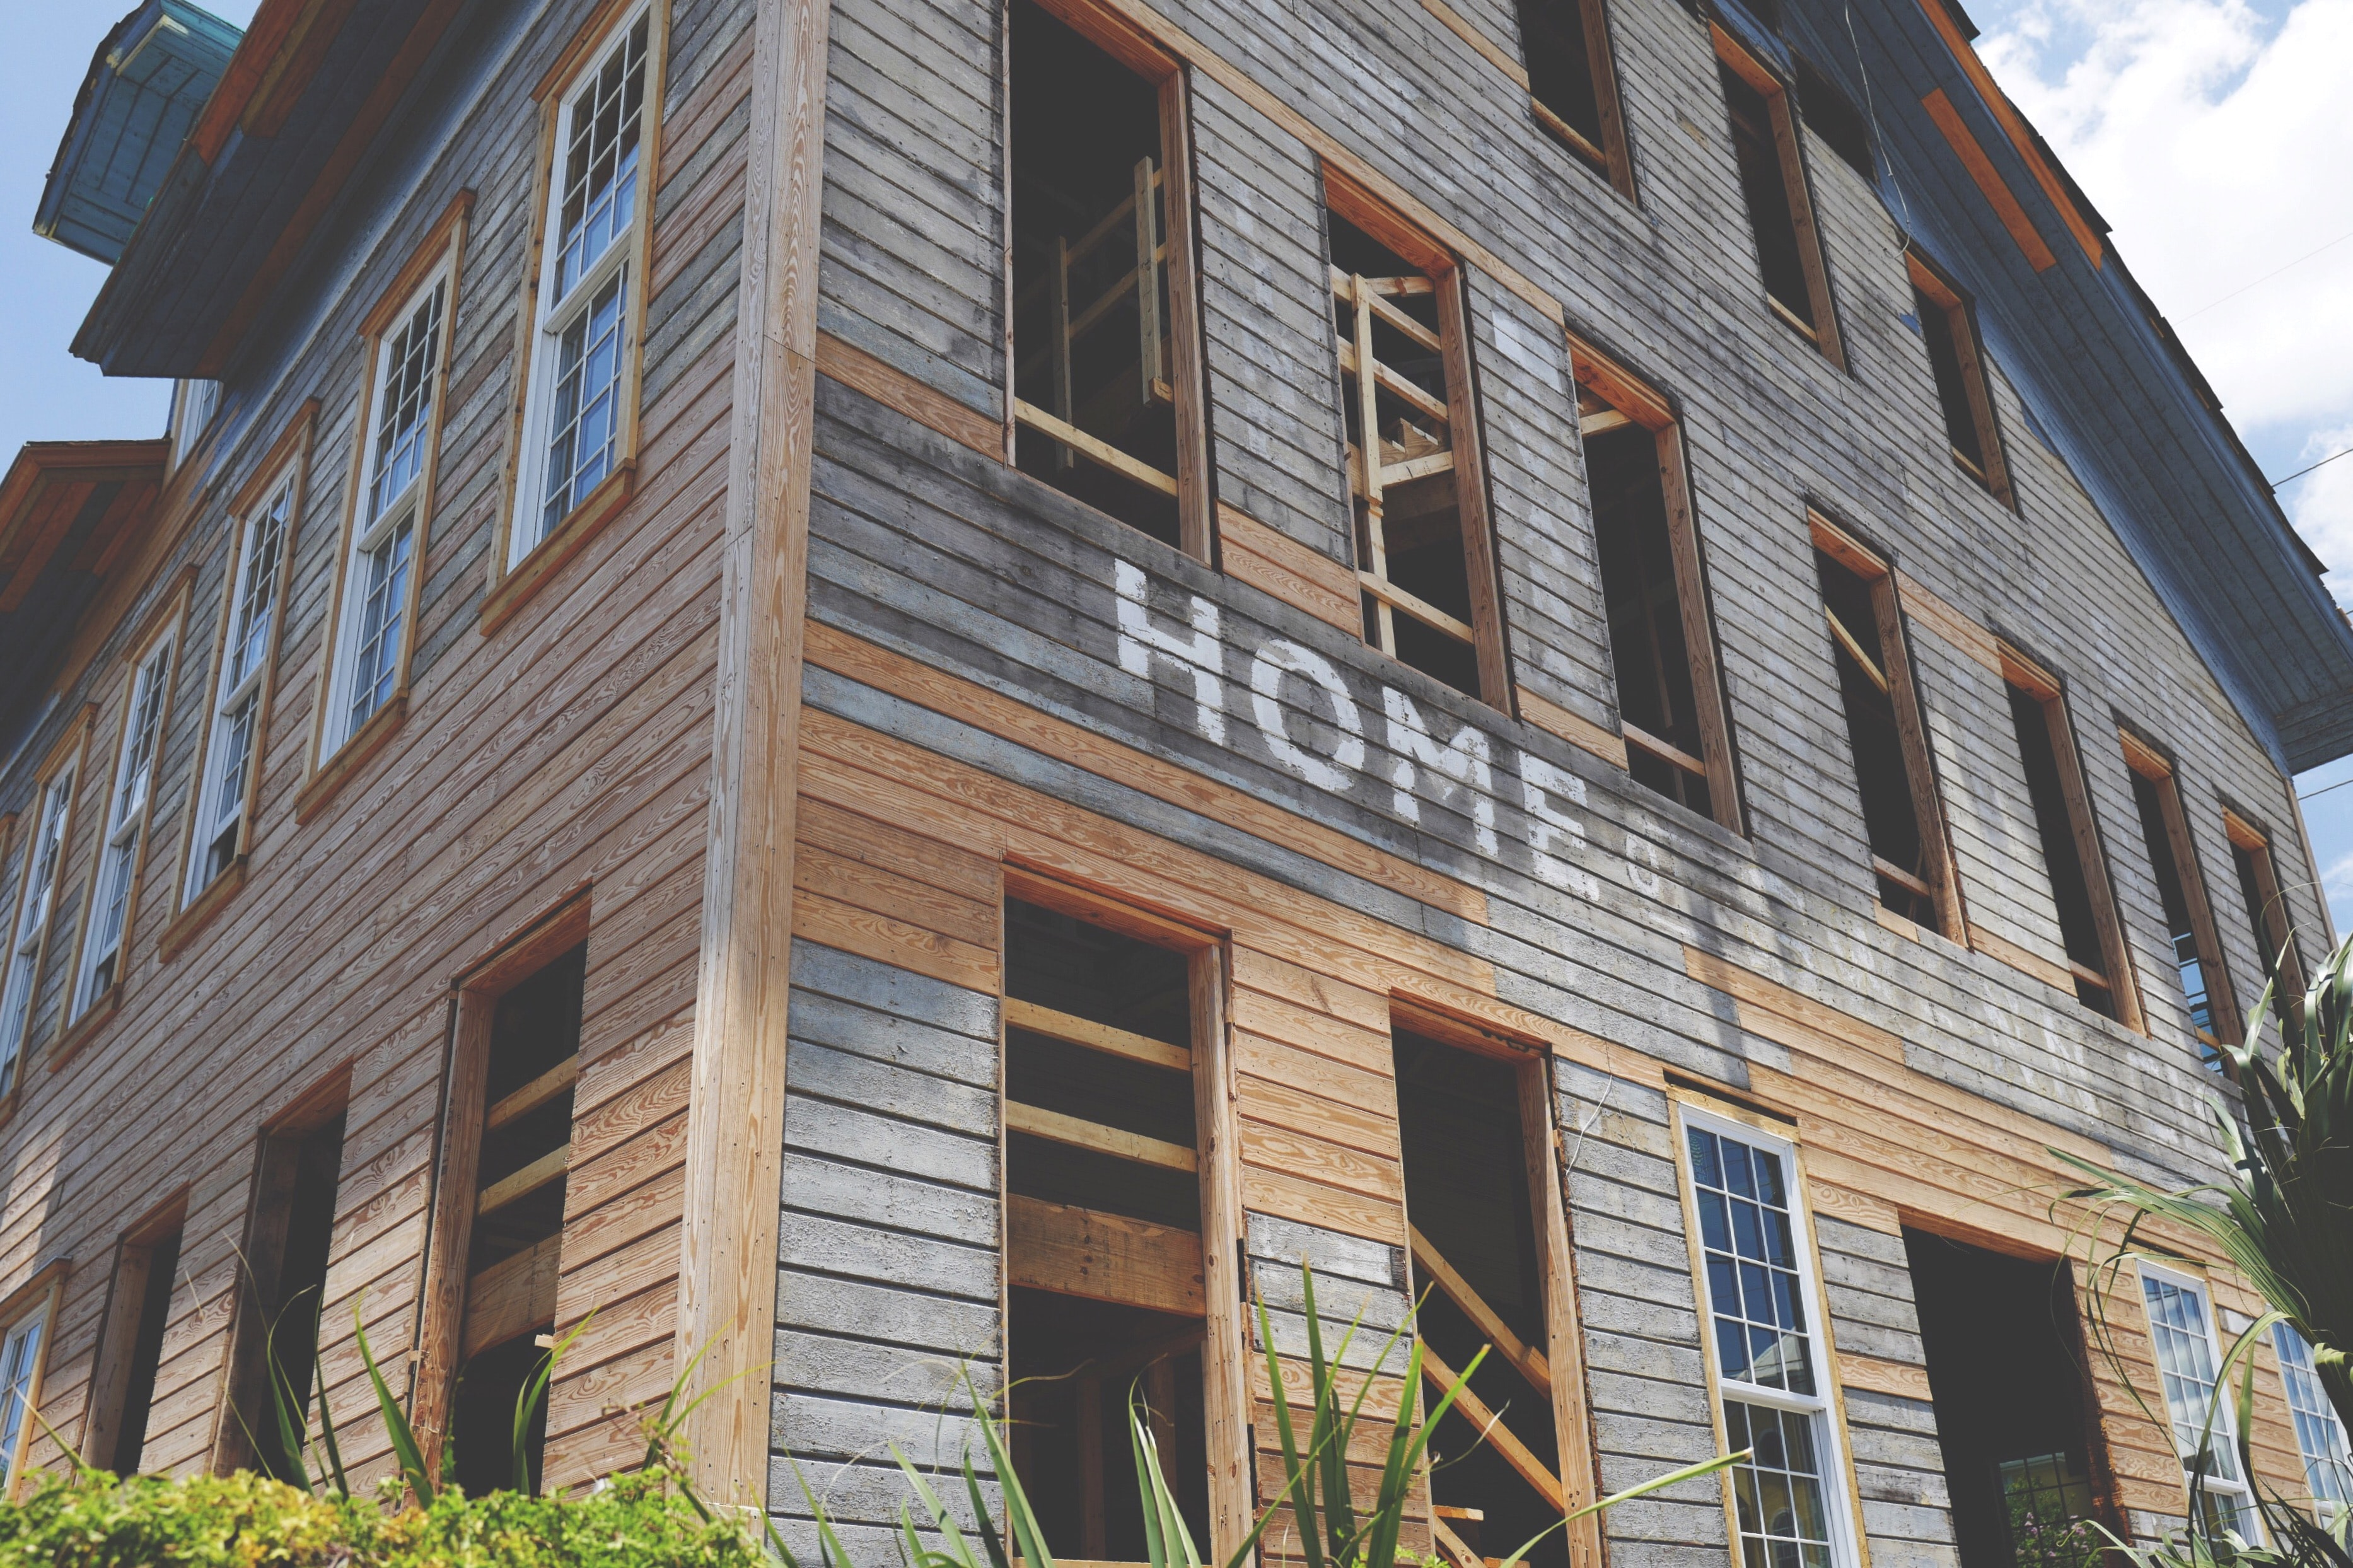 An old wooden building with a fading painted sign on it is being restored